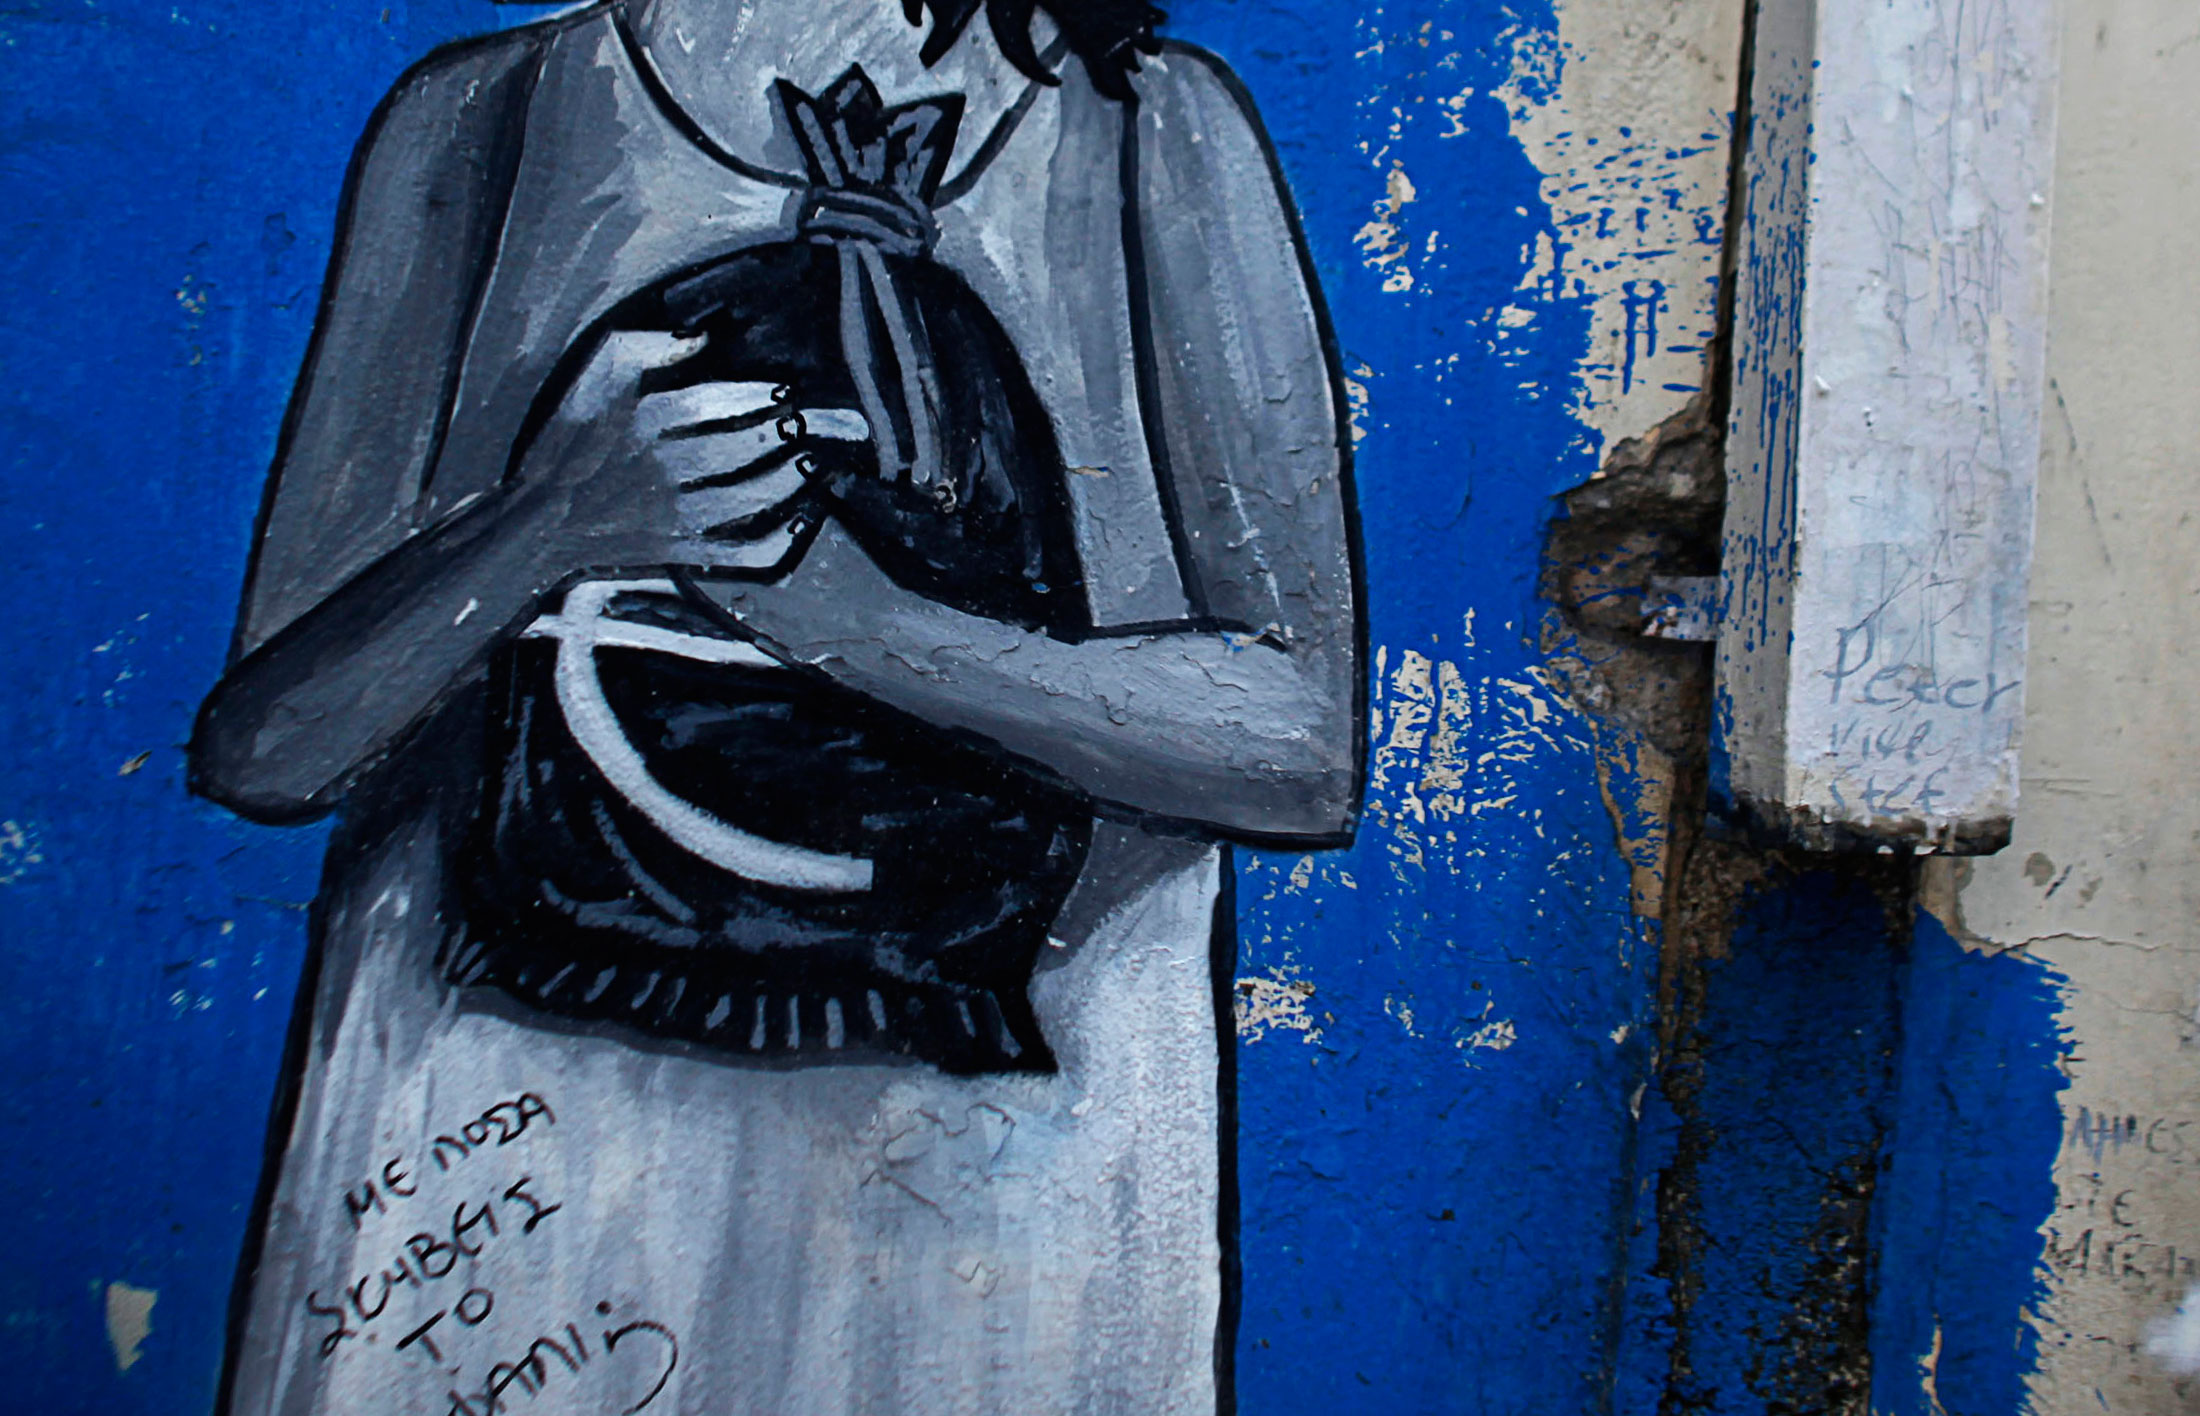 Athens: A Canvas for Austerity-Themed Street Art